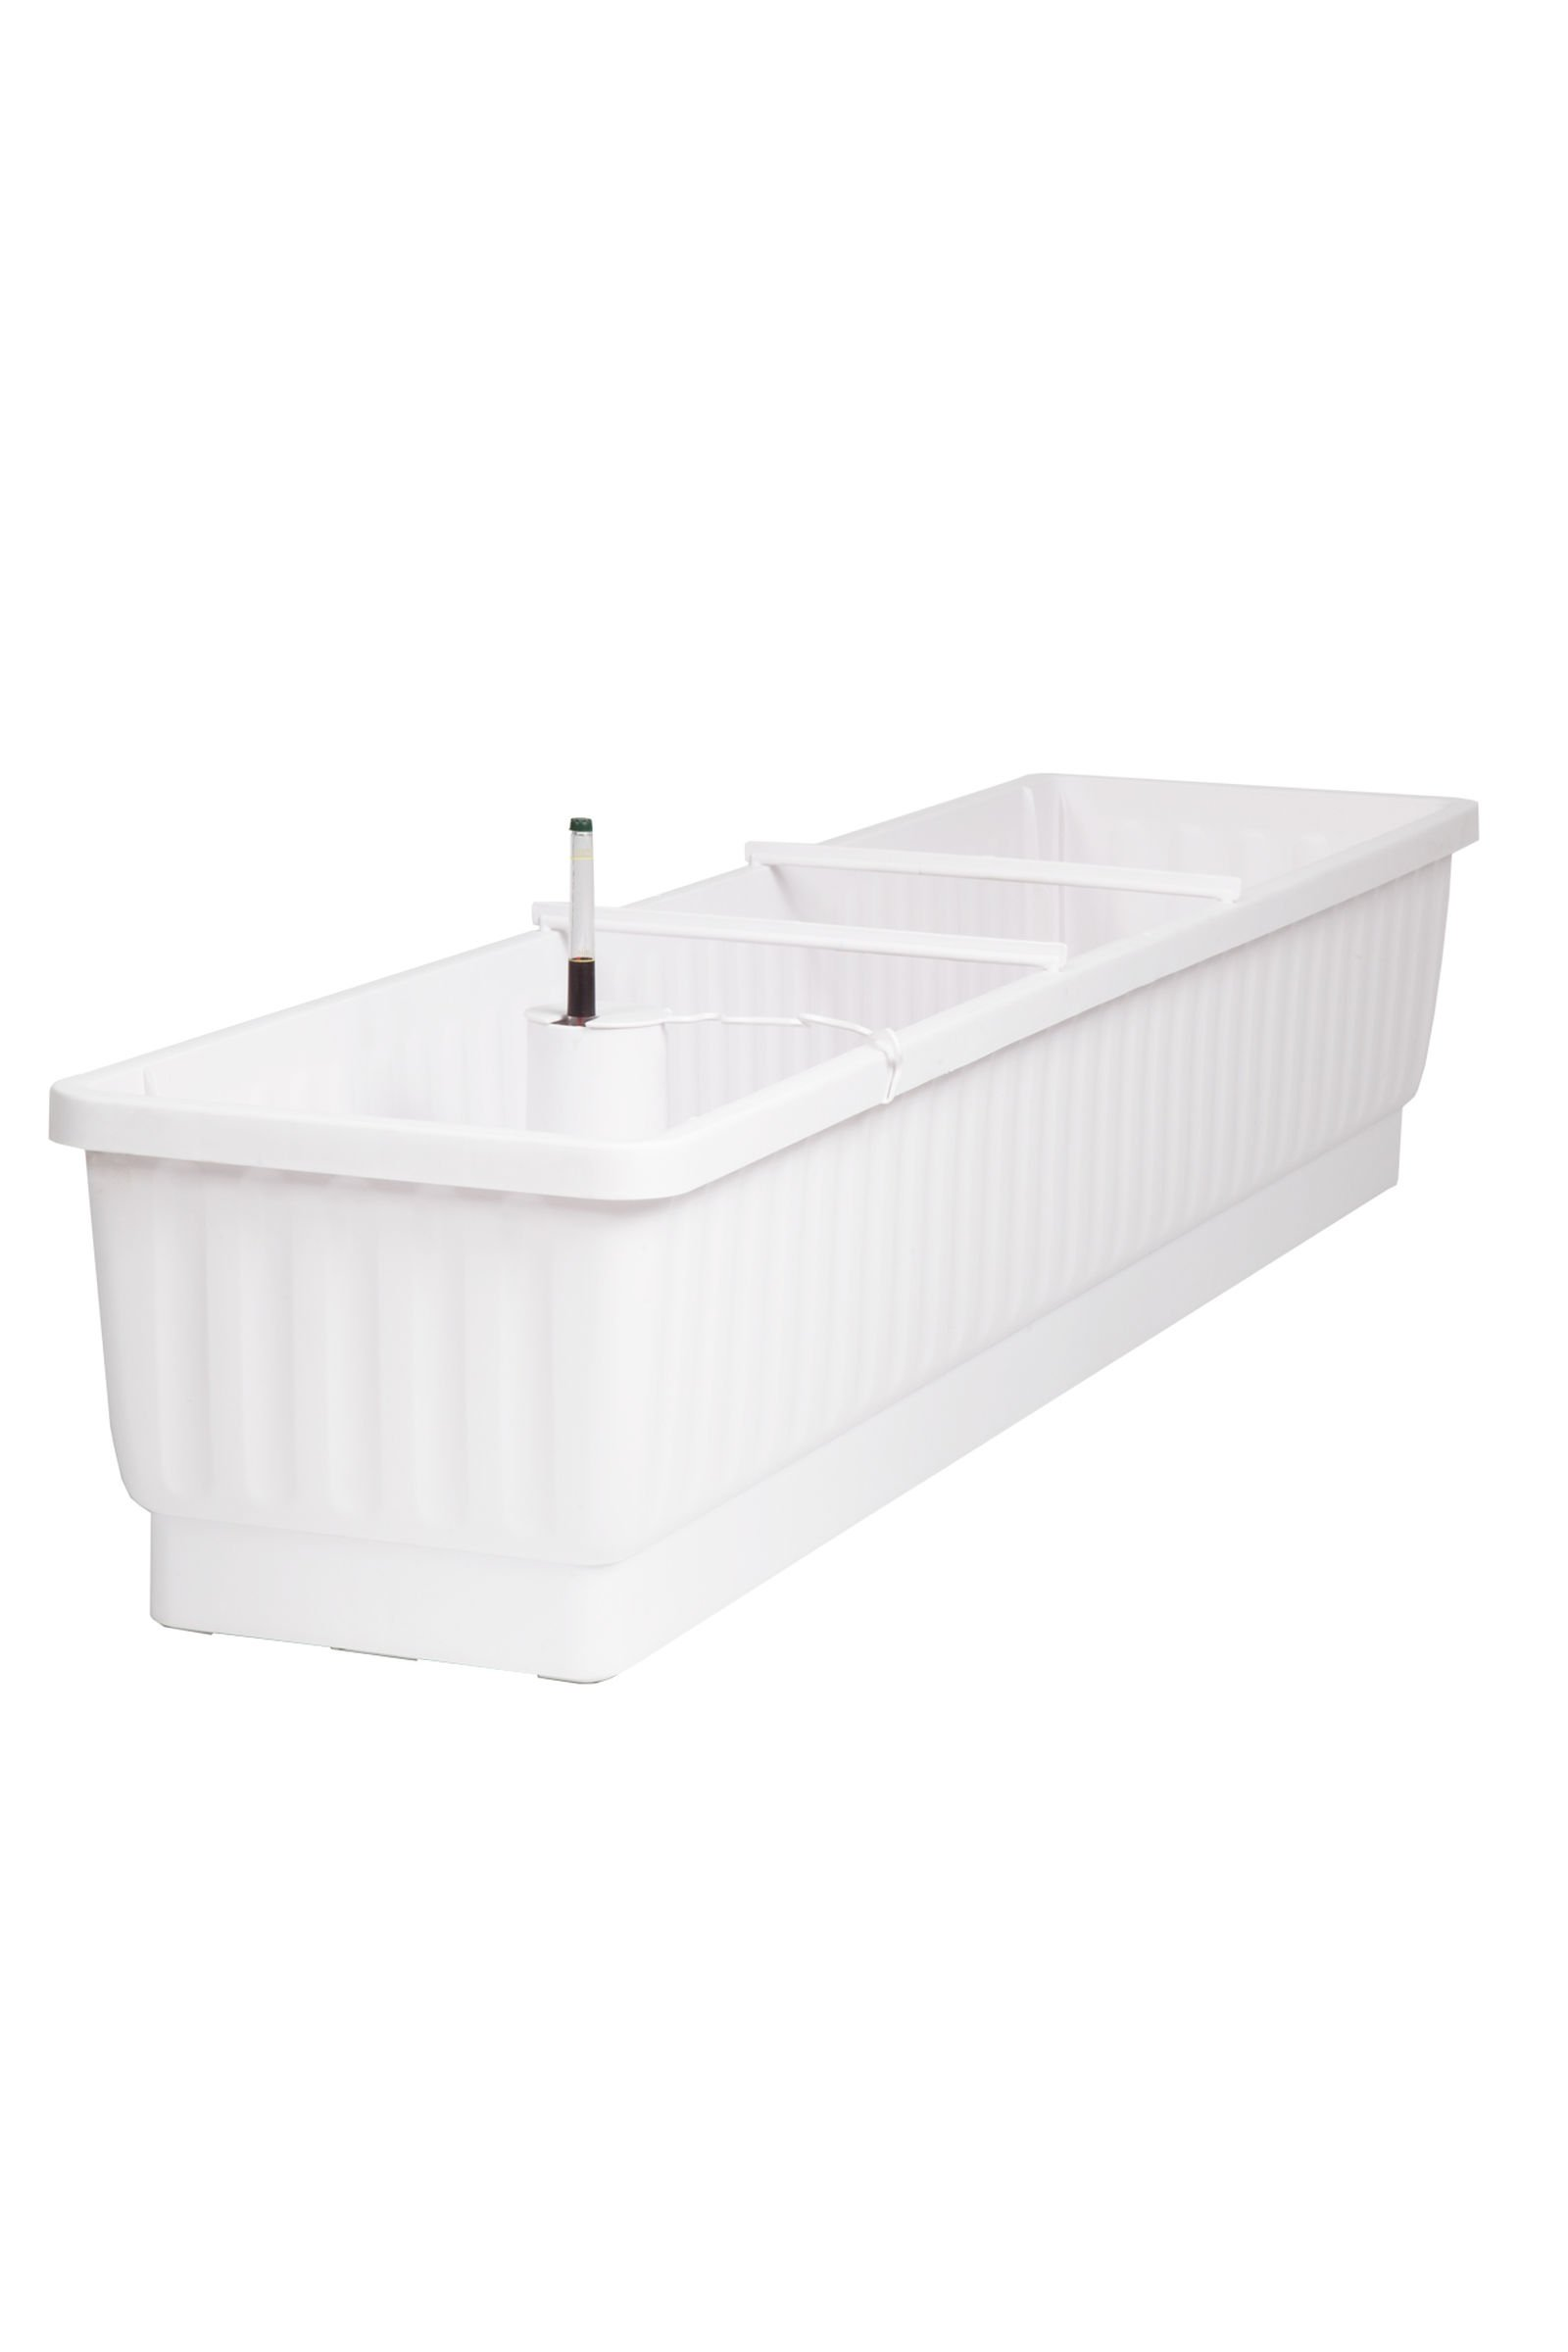 39'' Self-Watering Windowbox, White by Gardener's Supply Company